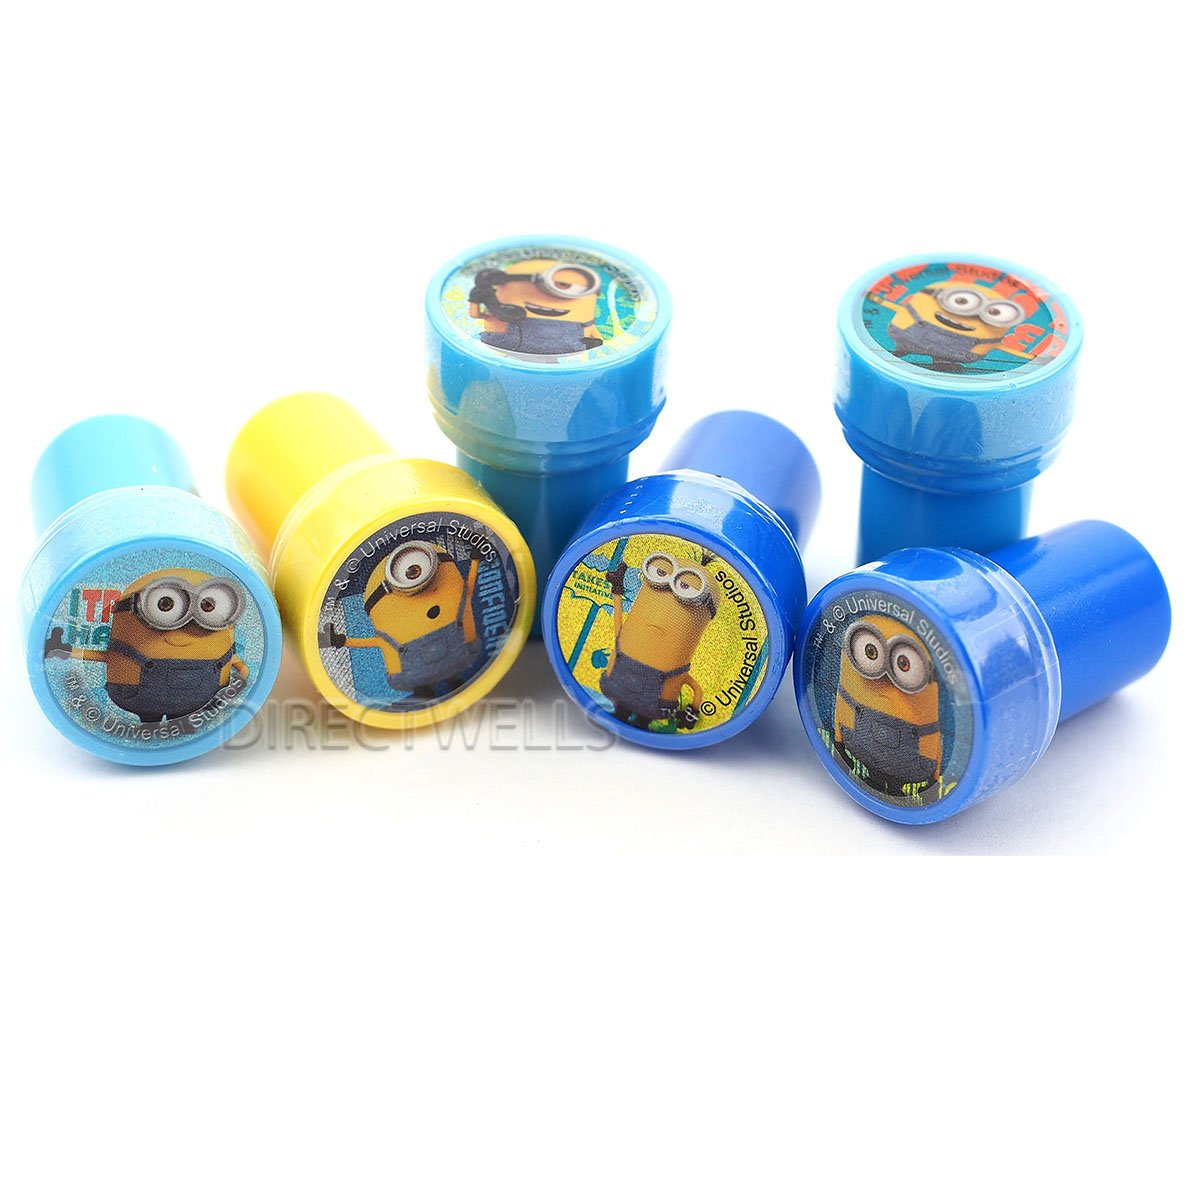 Amazon.com: Despicable Me Minions Stampers Party Favors (10 Stampers): Toys  U0026 Games